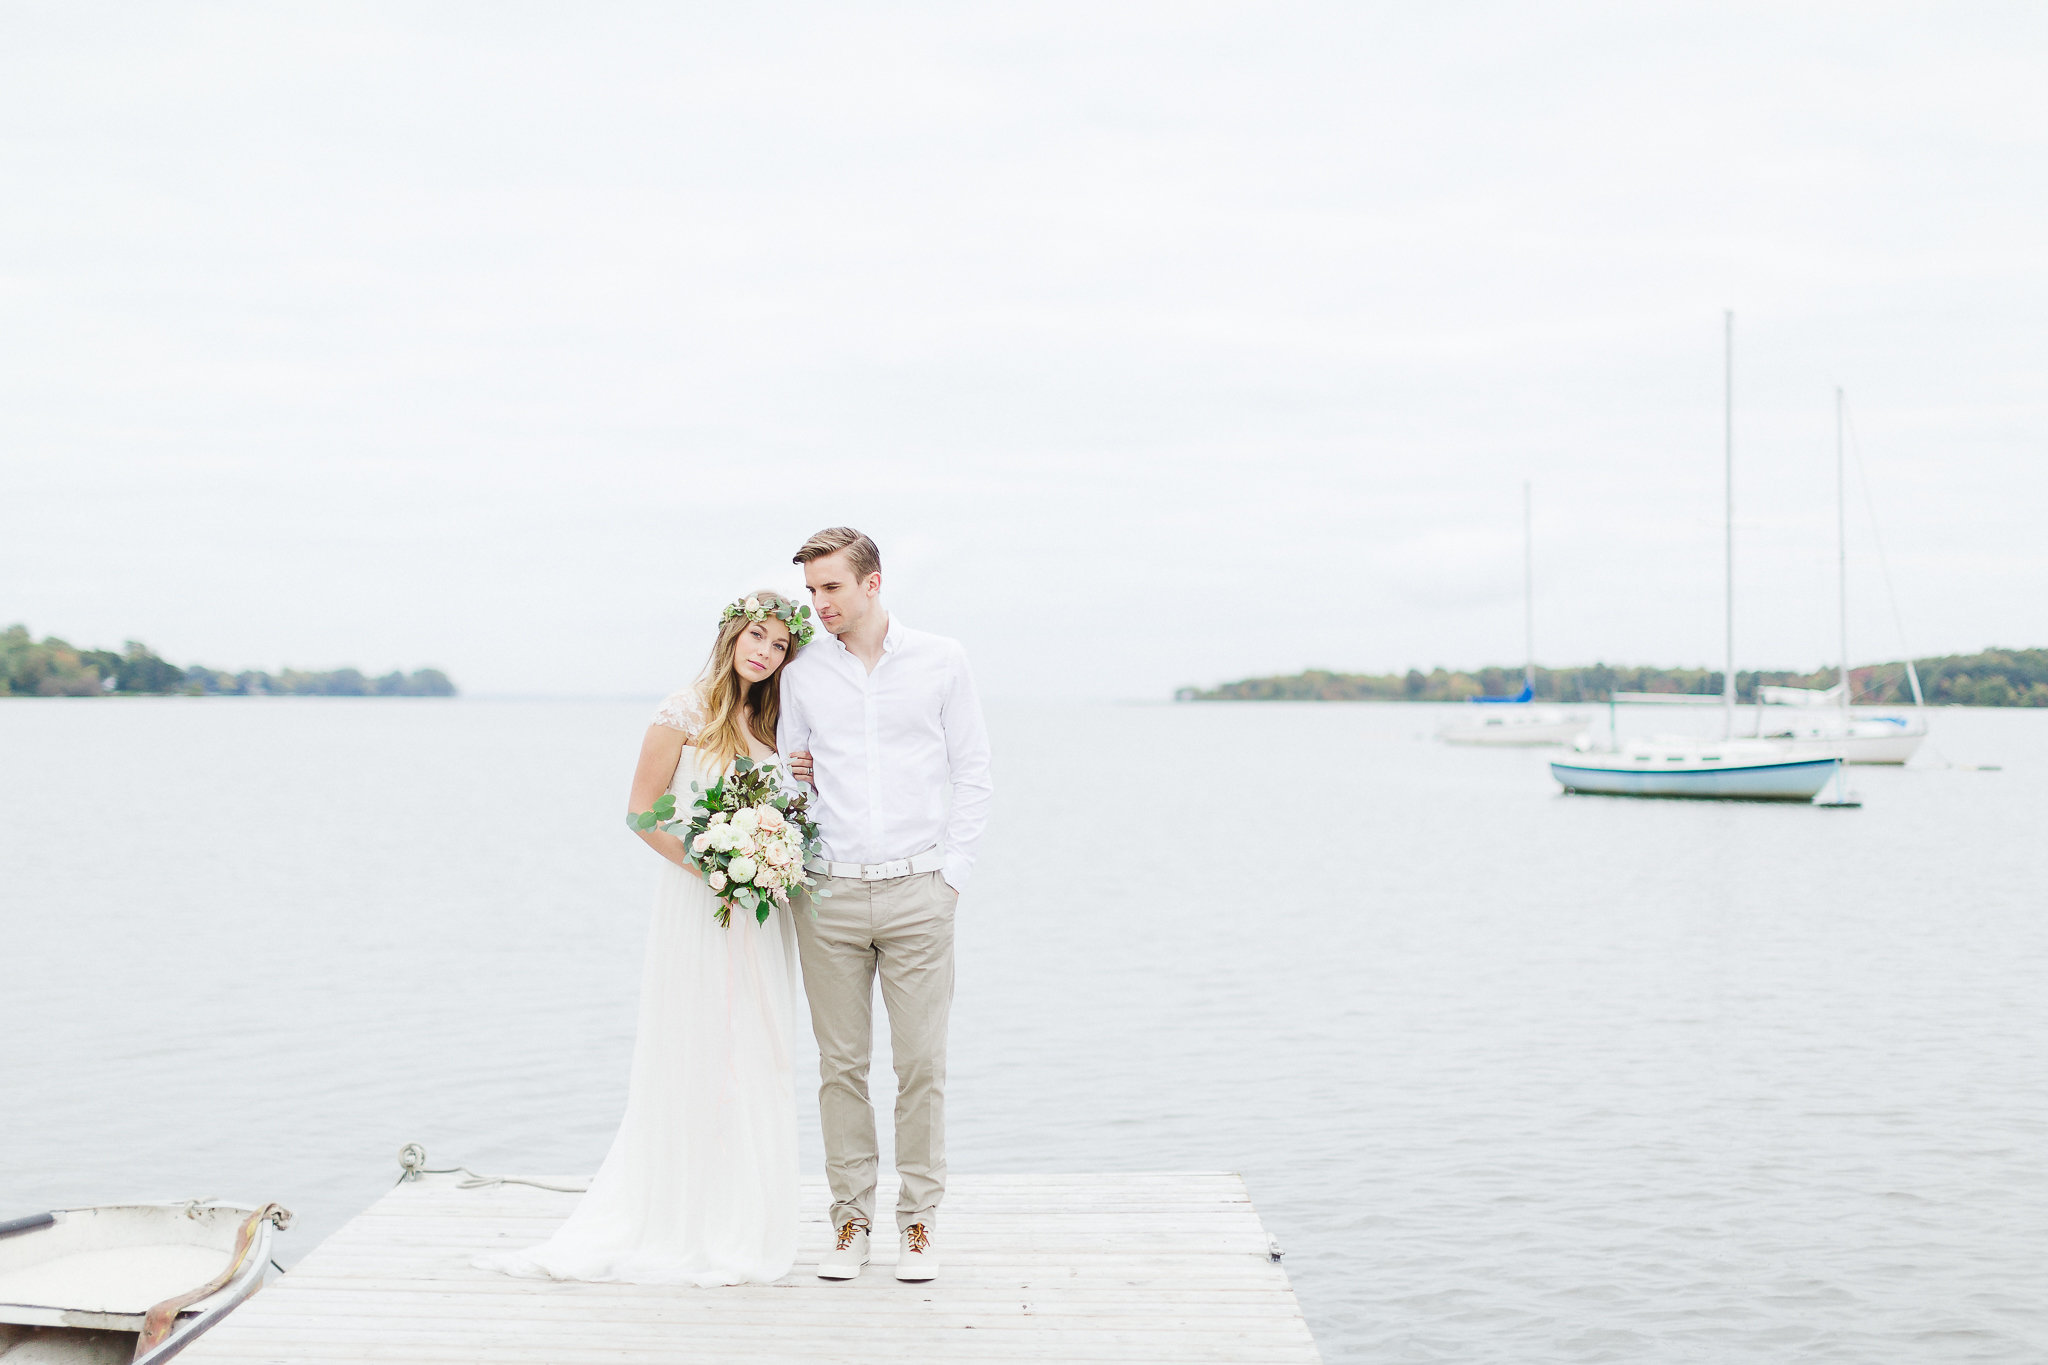 photographe-mariage-montreal-west-island-lisa-renault-photographie-montreal-wedding-photographer-22